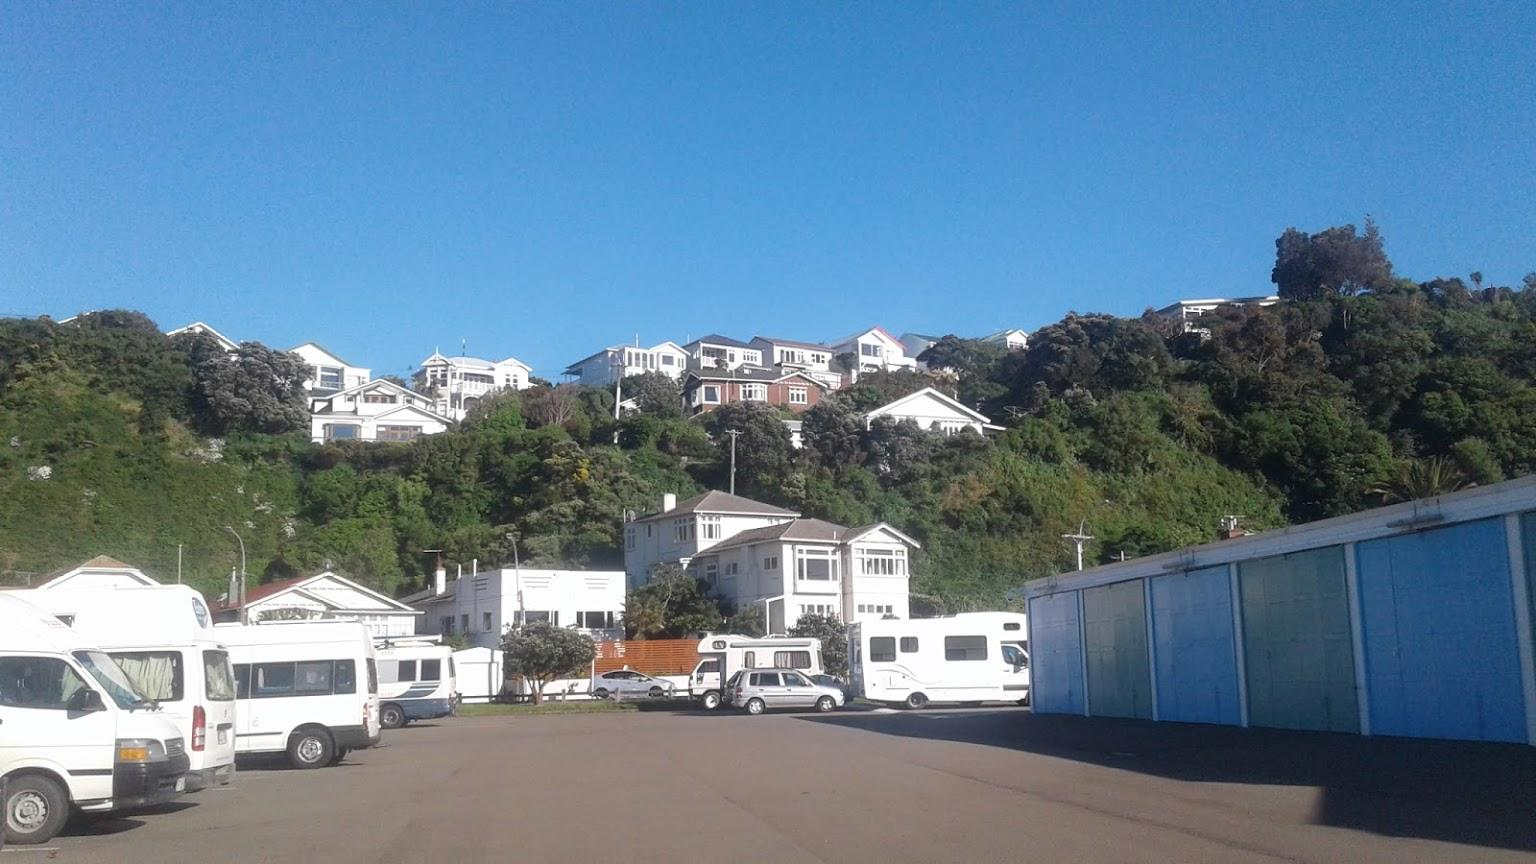 Evans Bay Marina Self Contained Camping